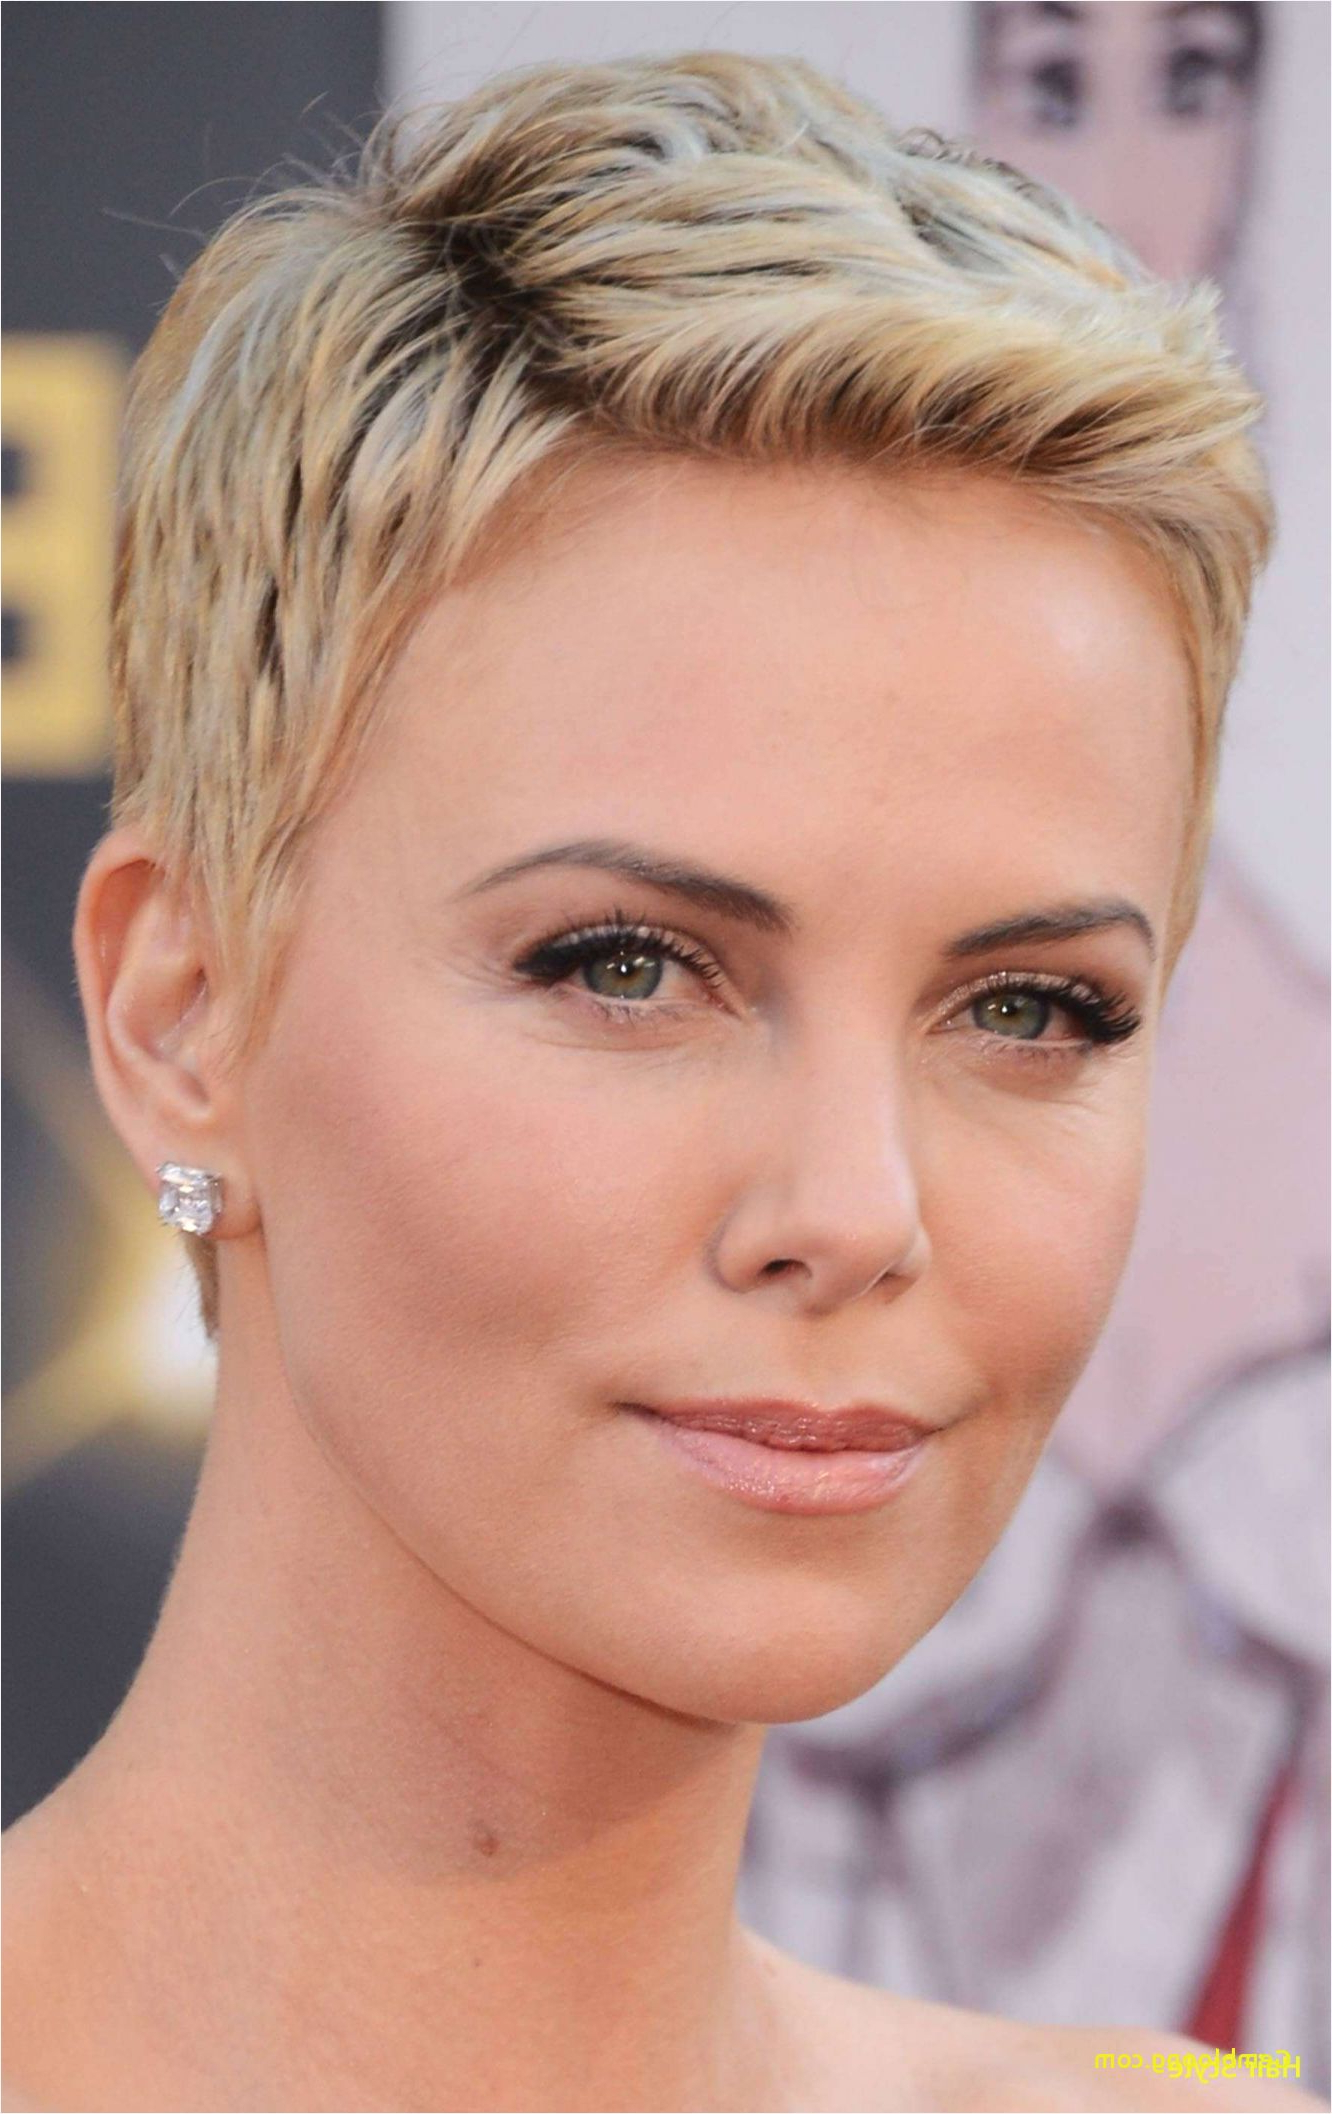 Latest Short Weave Hairstyles For Oval Faces To Make You Look With Short Weaves For Oval Faces (View 17 of 25)